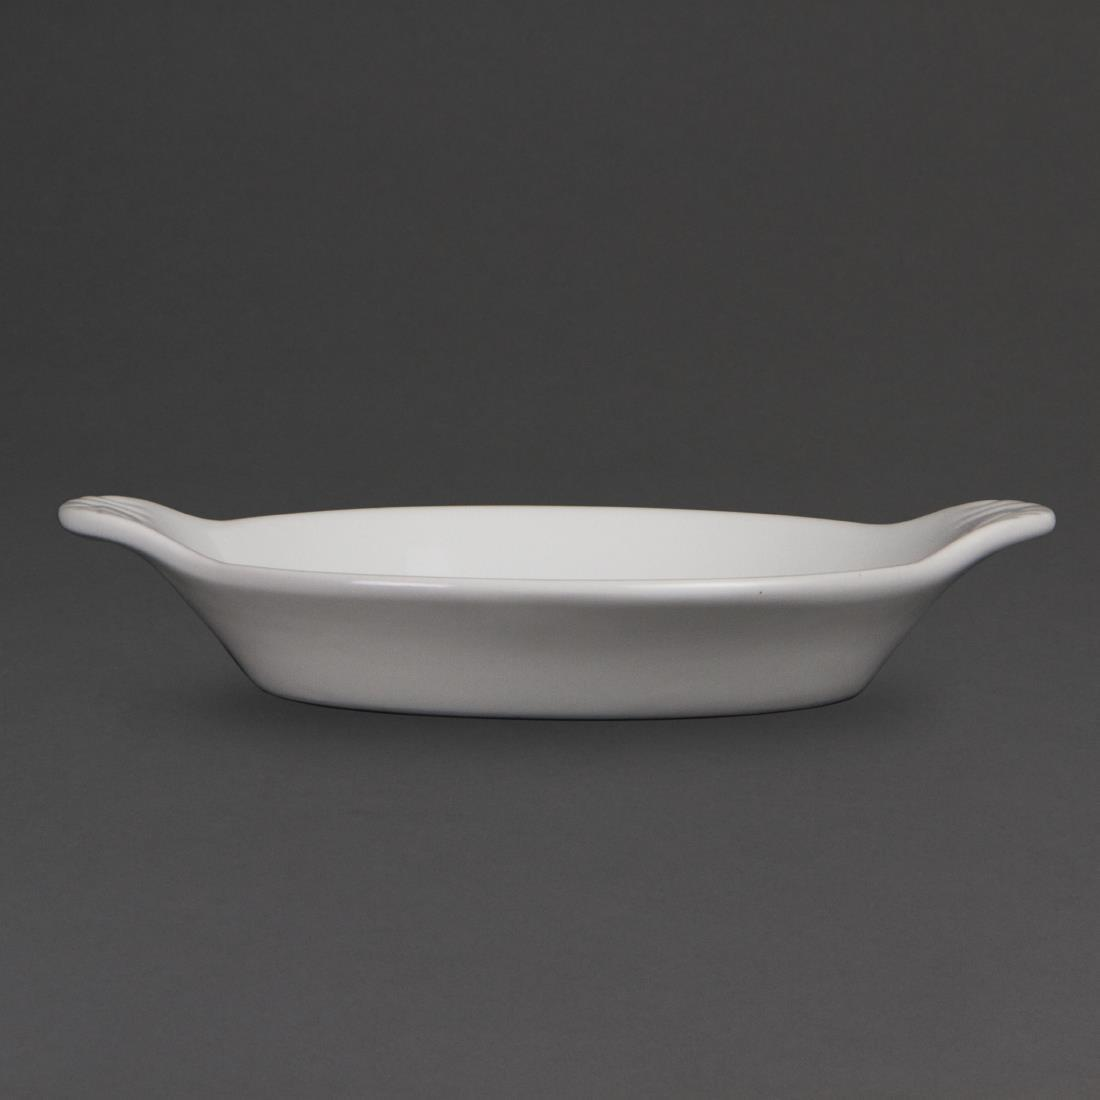 Olympia Whiteware Round Eared Dishes 170 x 140mm